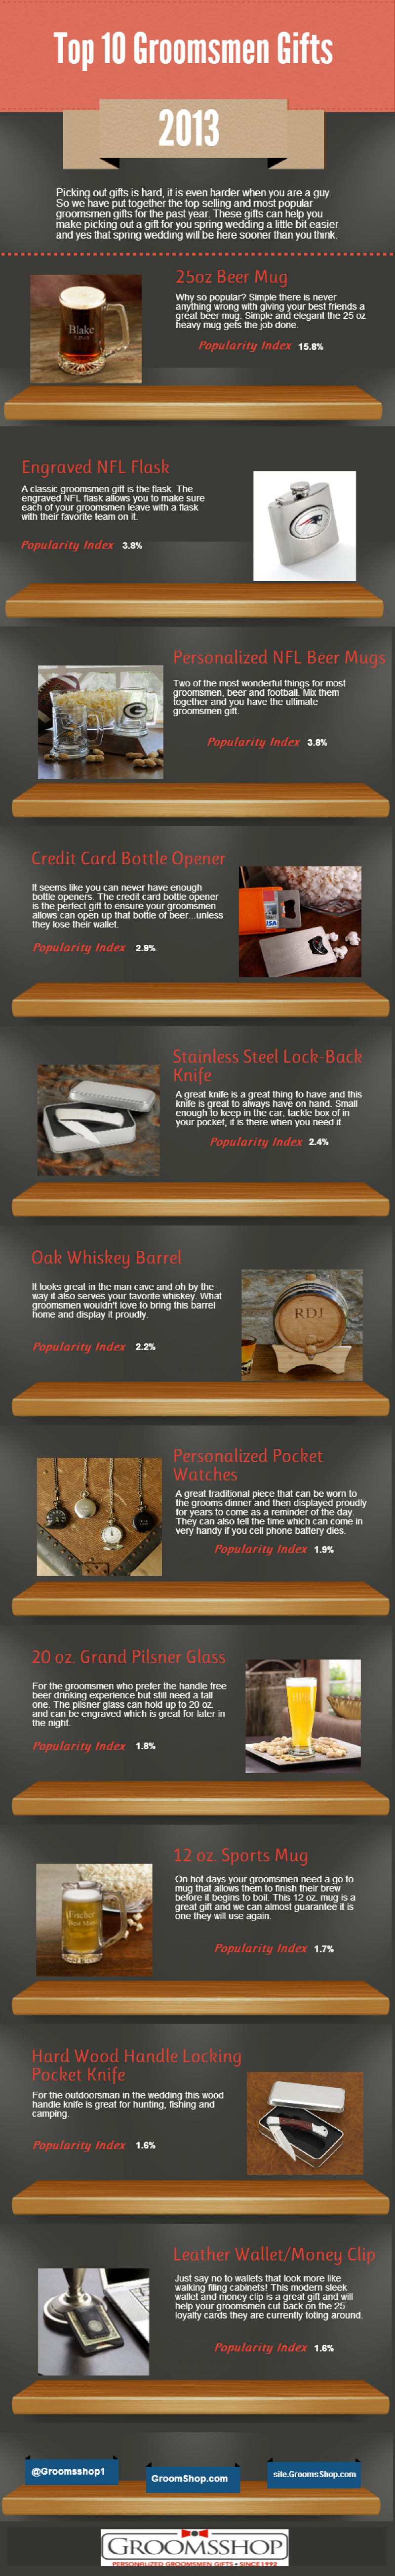 Top Groomsmen Gifts 2013